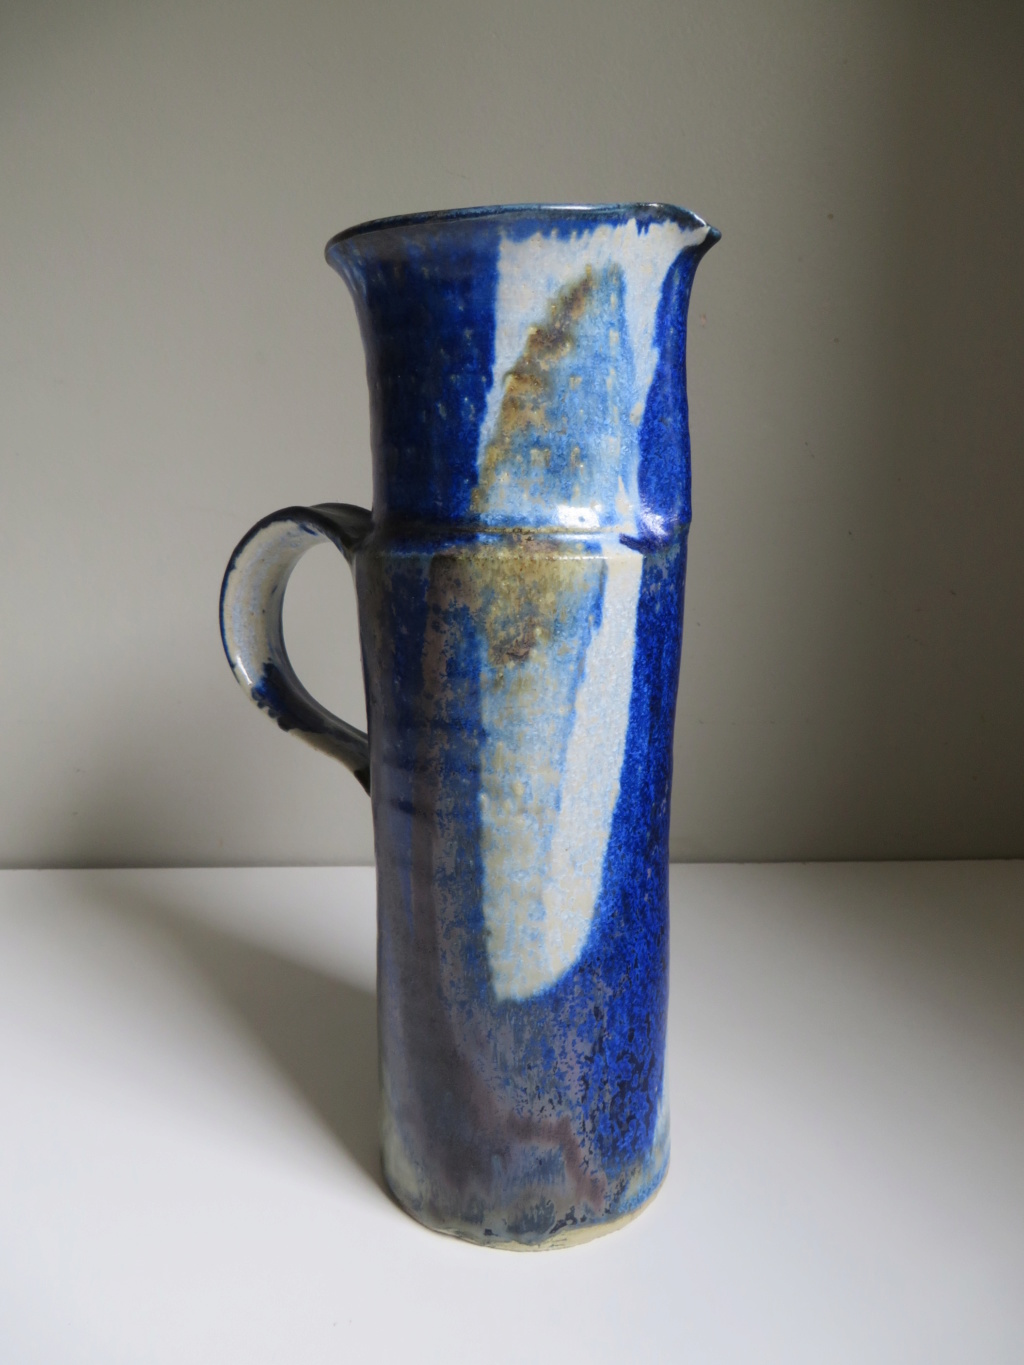 Tall jug with blue flambe like glaze - hand signed - hard to read! Img_0112